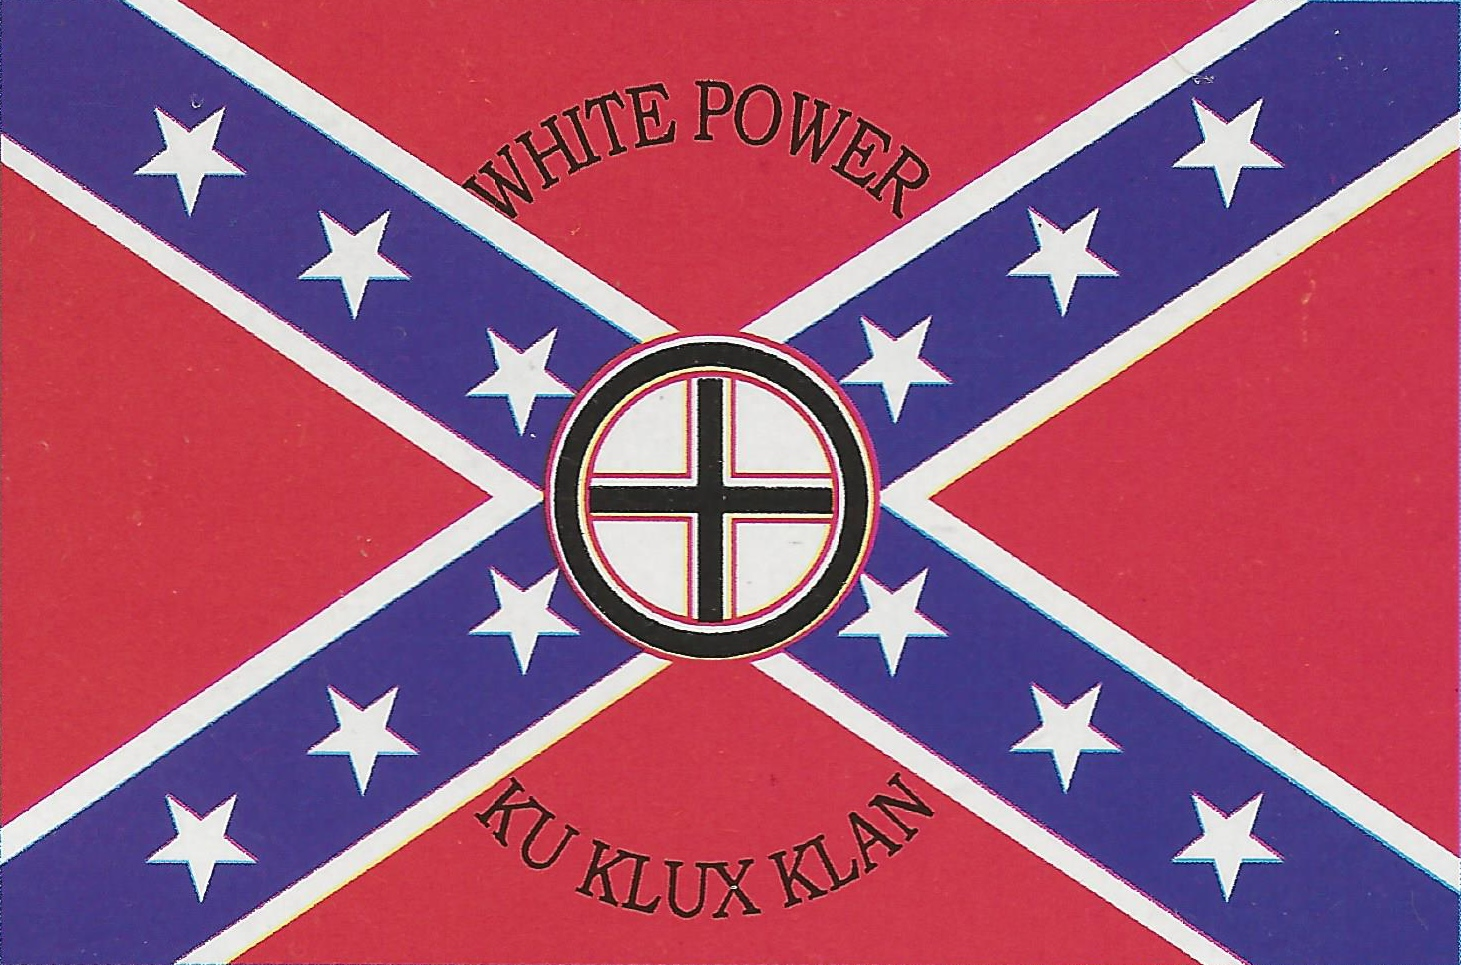 Flags Tightrope Records Tightrope Records White Power White